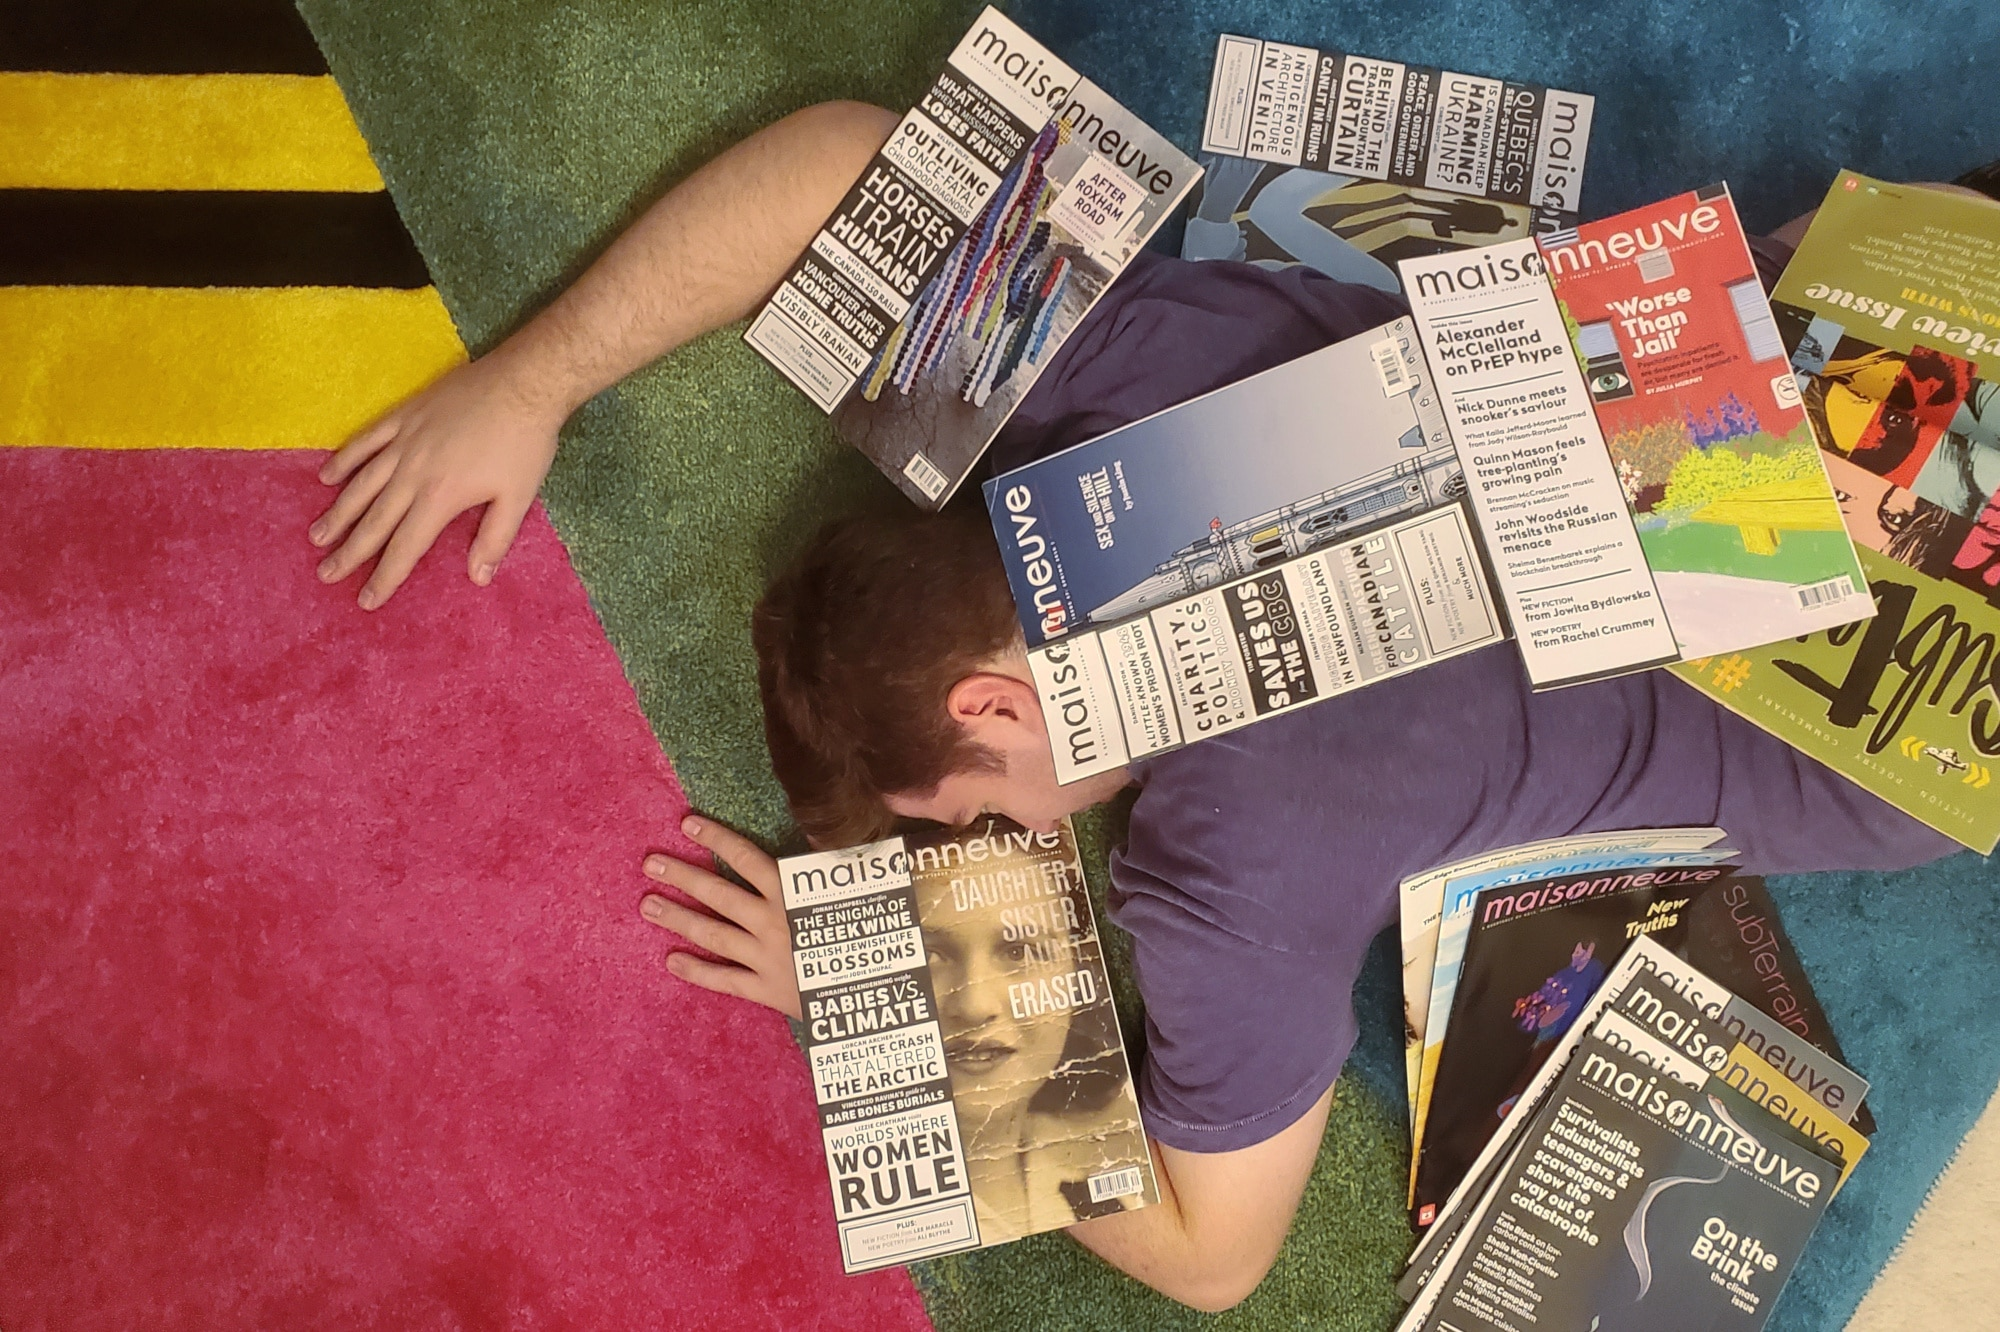 I lie on the floor covered in magazines